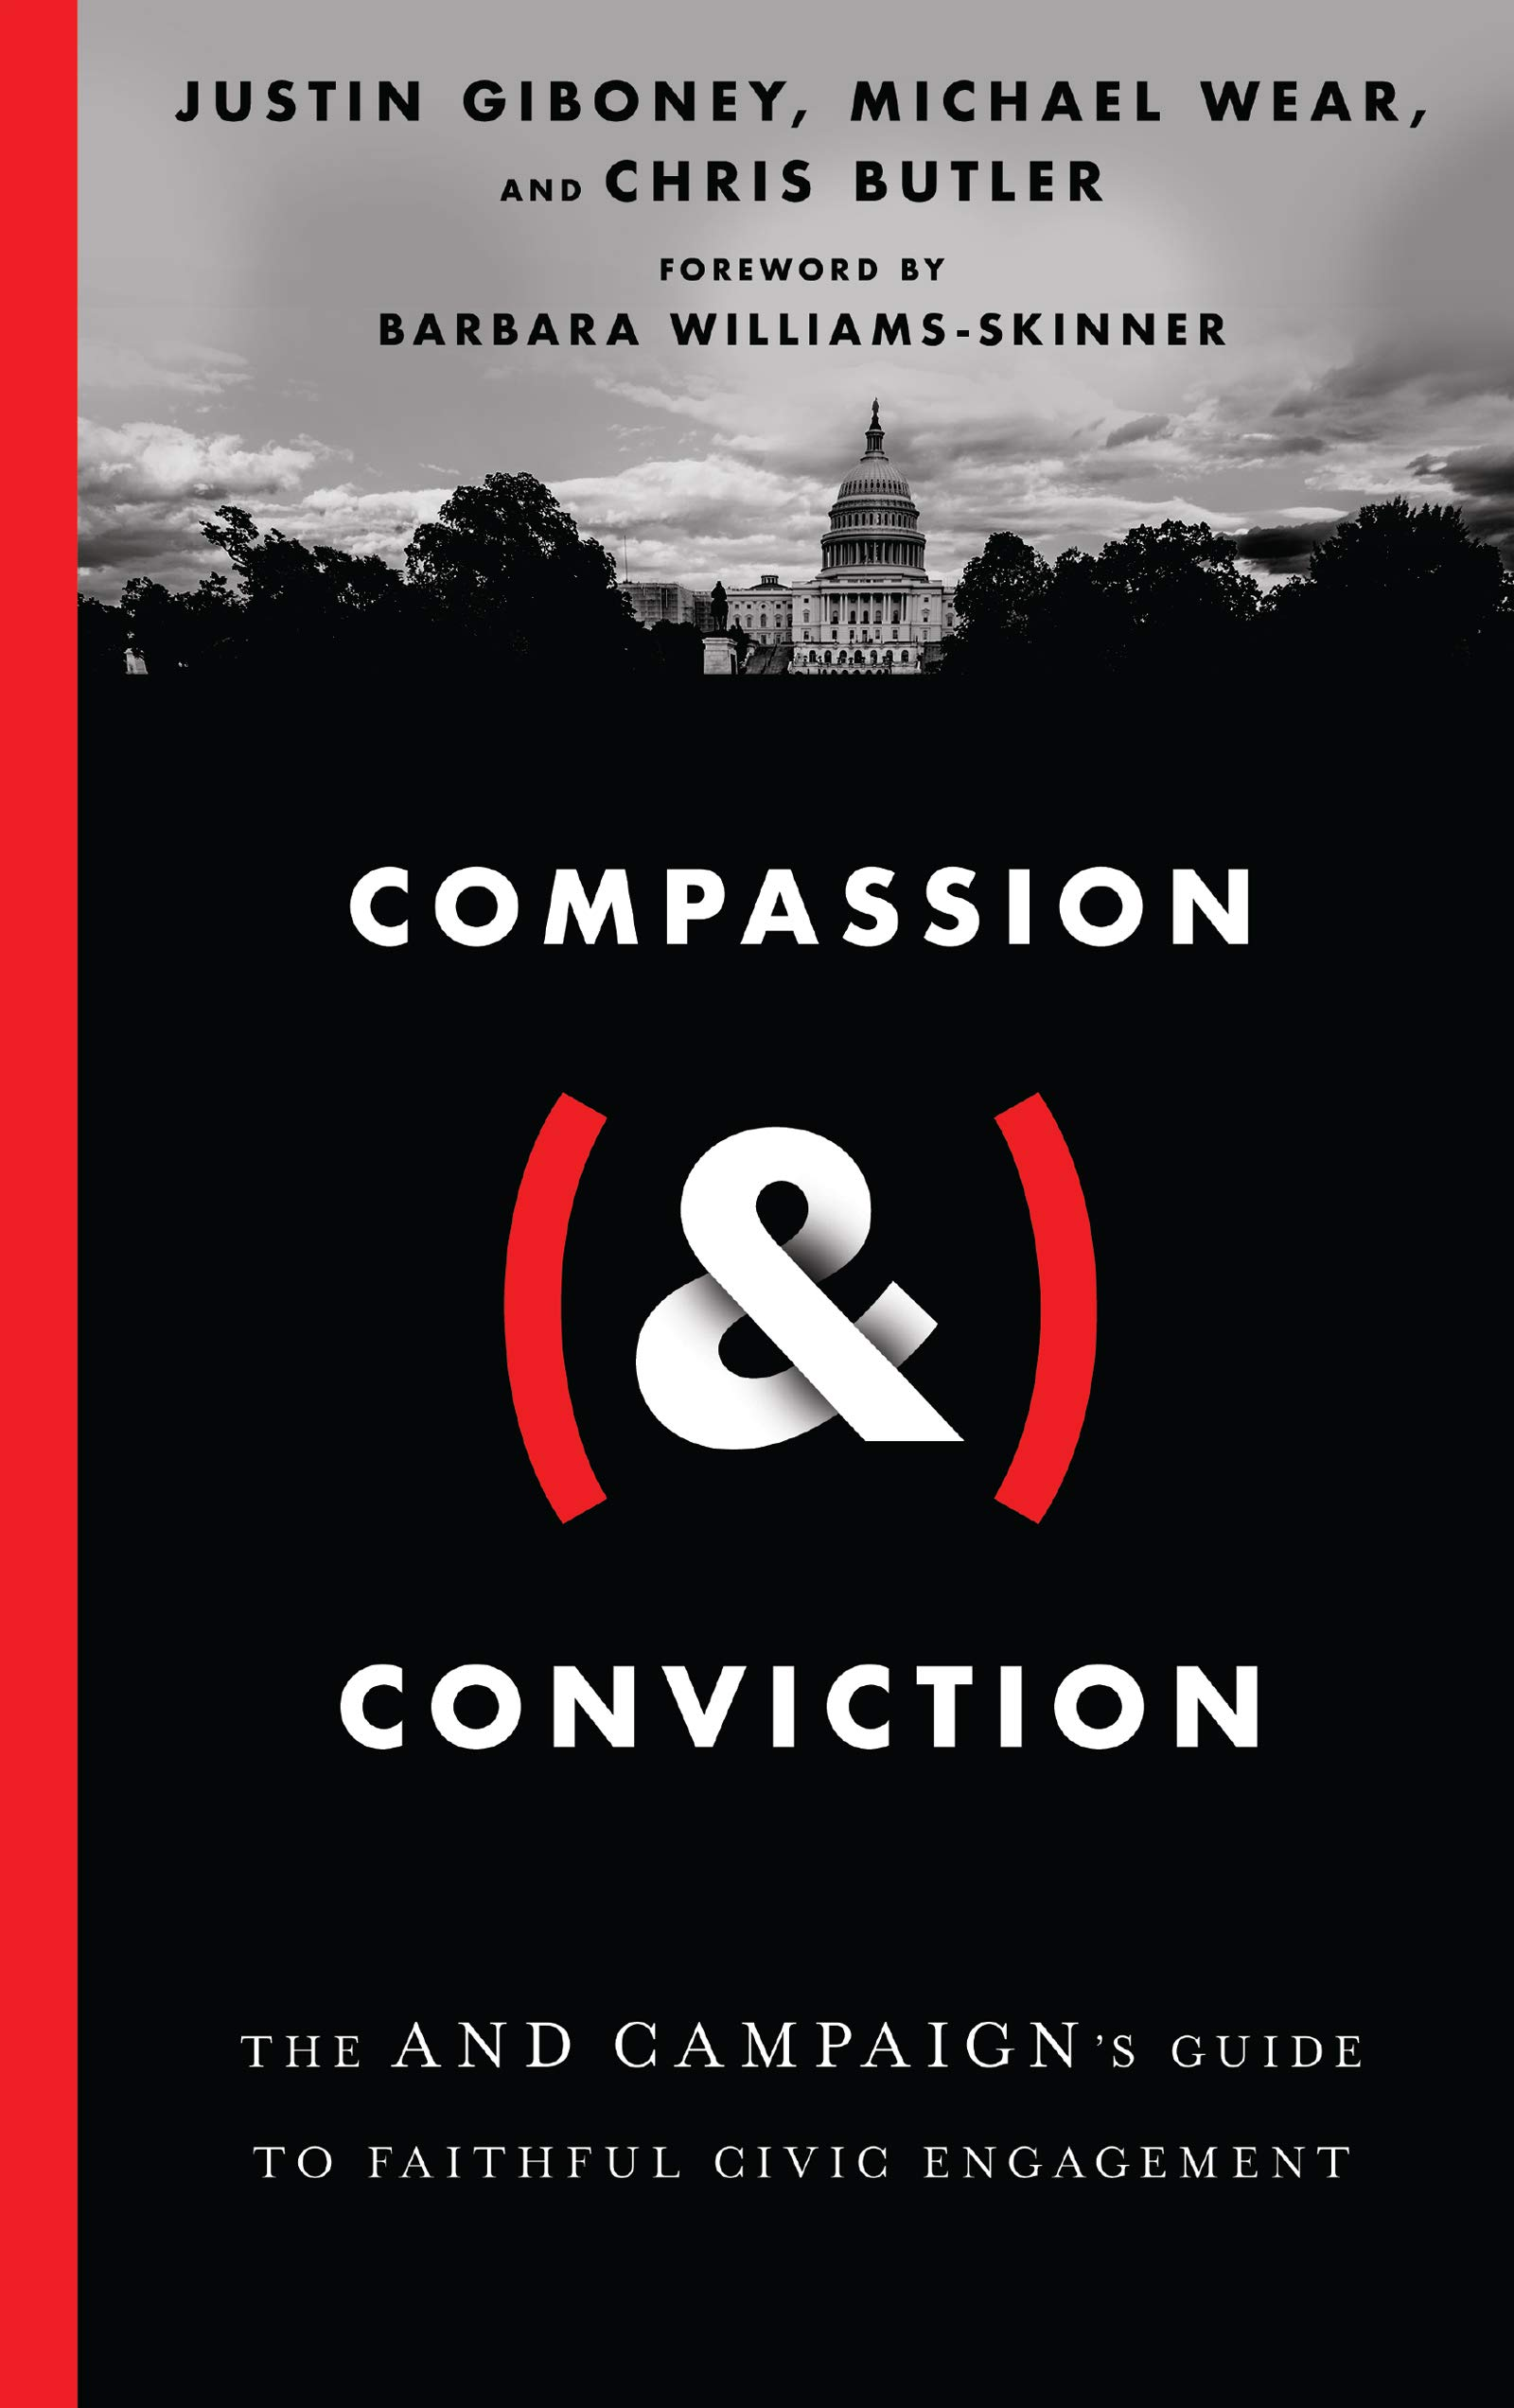 Compassion (&) Conviction: The AND Campaign's Guide to Faithful Civic  Engagement: Giboney, Justin, Wear, Michael, Butler, Chris,  Williams-Skinner, Barbara: 9780830848102: Amazon.com: Books